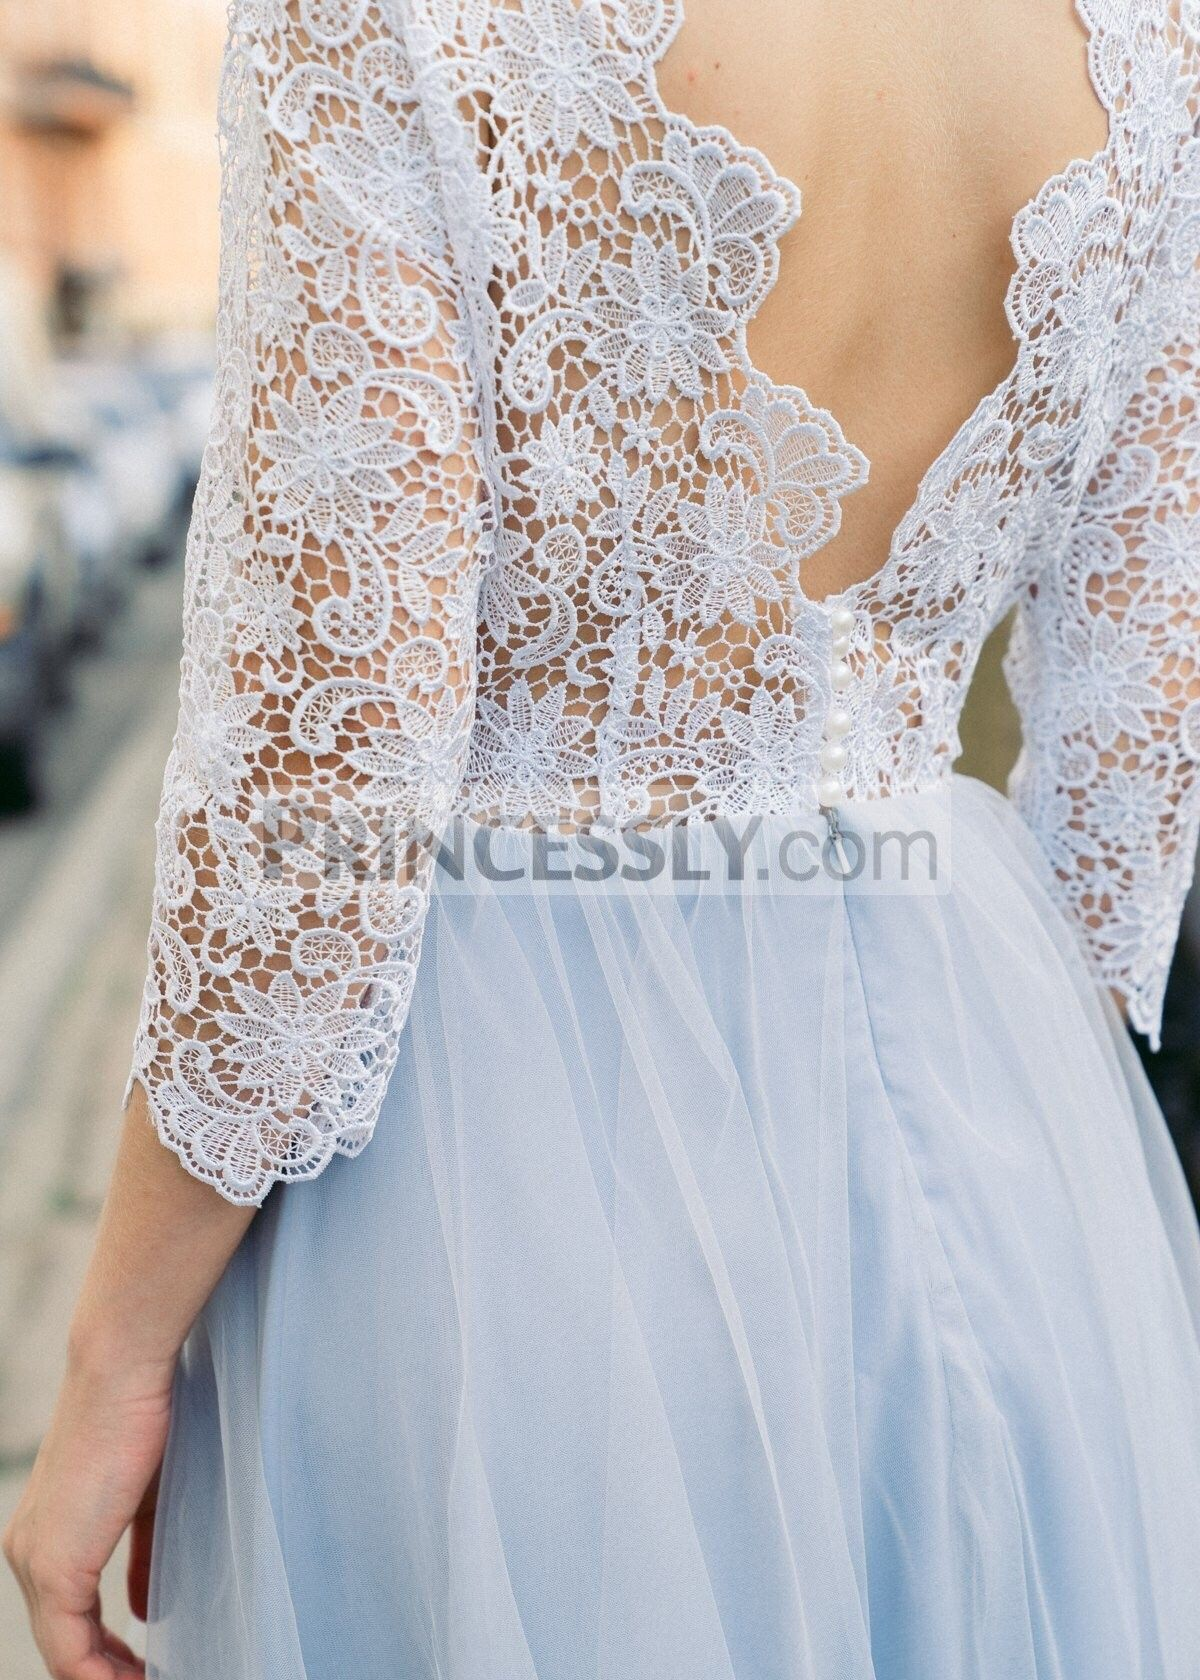 Wedding dress with long sleeves  Lace Tulle Long Sleeves V Back Wedding Dress Bridal Gown  Lace